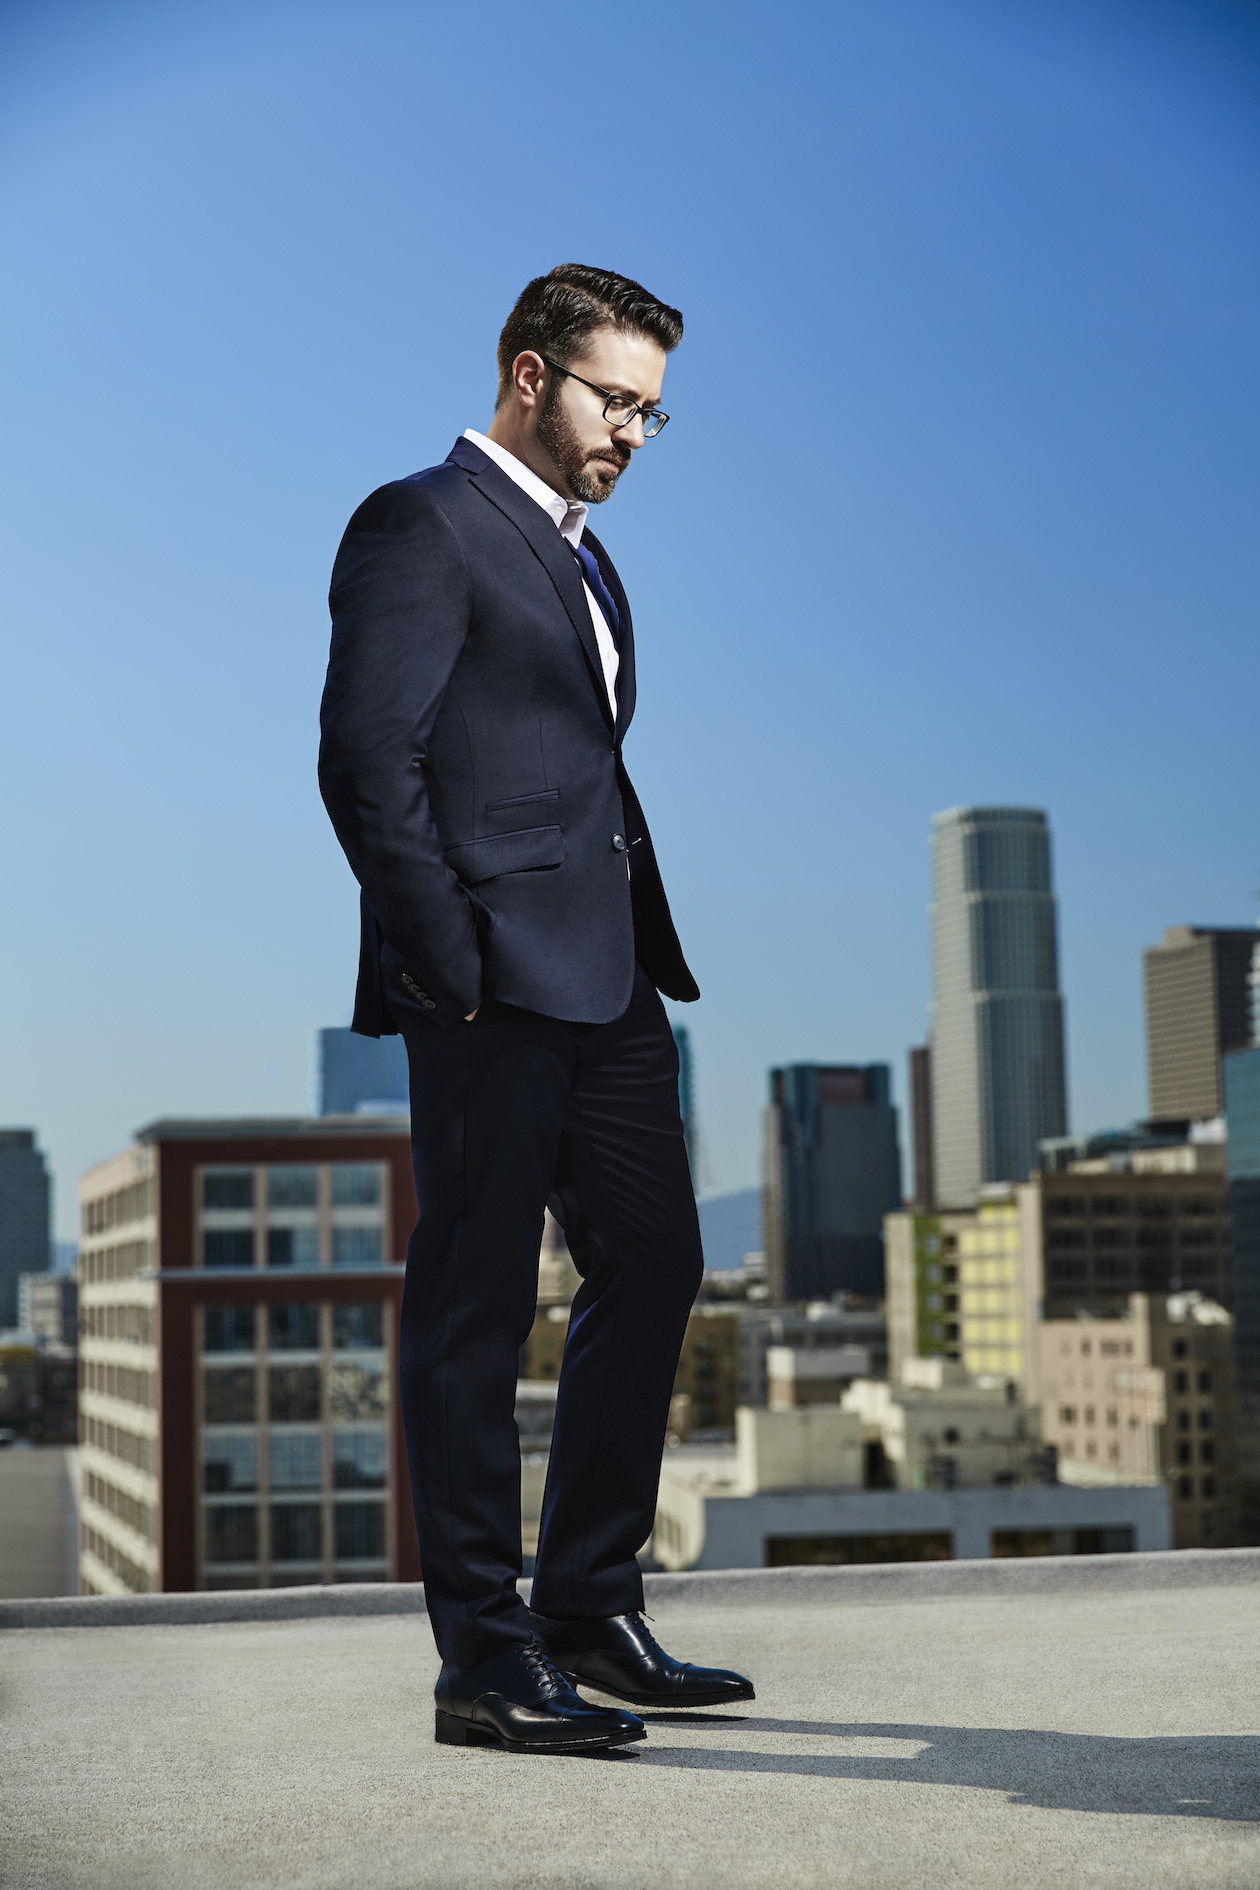 Danny Gokey (Photo provided by Kingdom Bound Ministries)